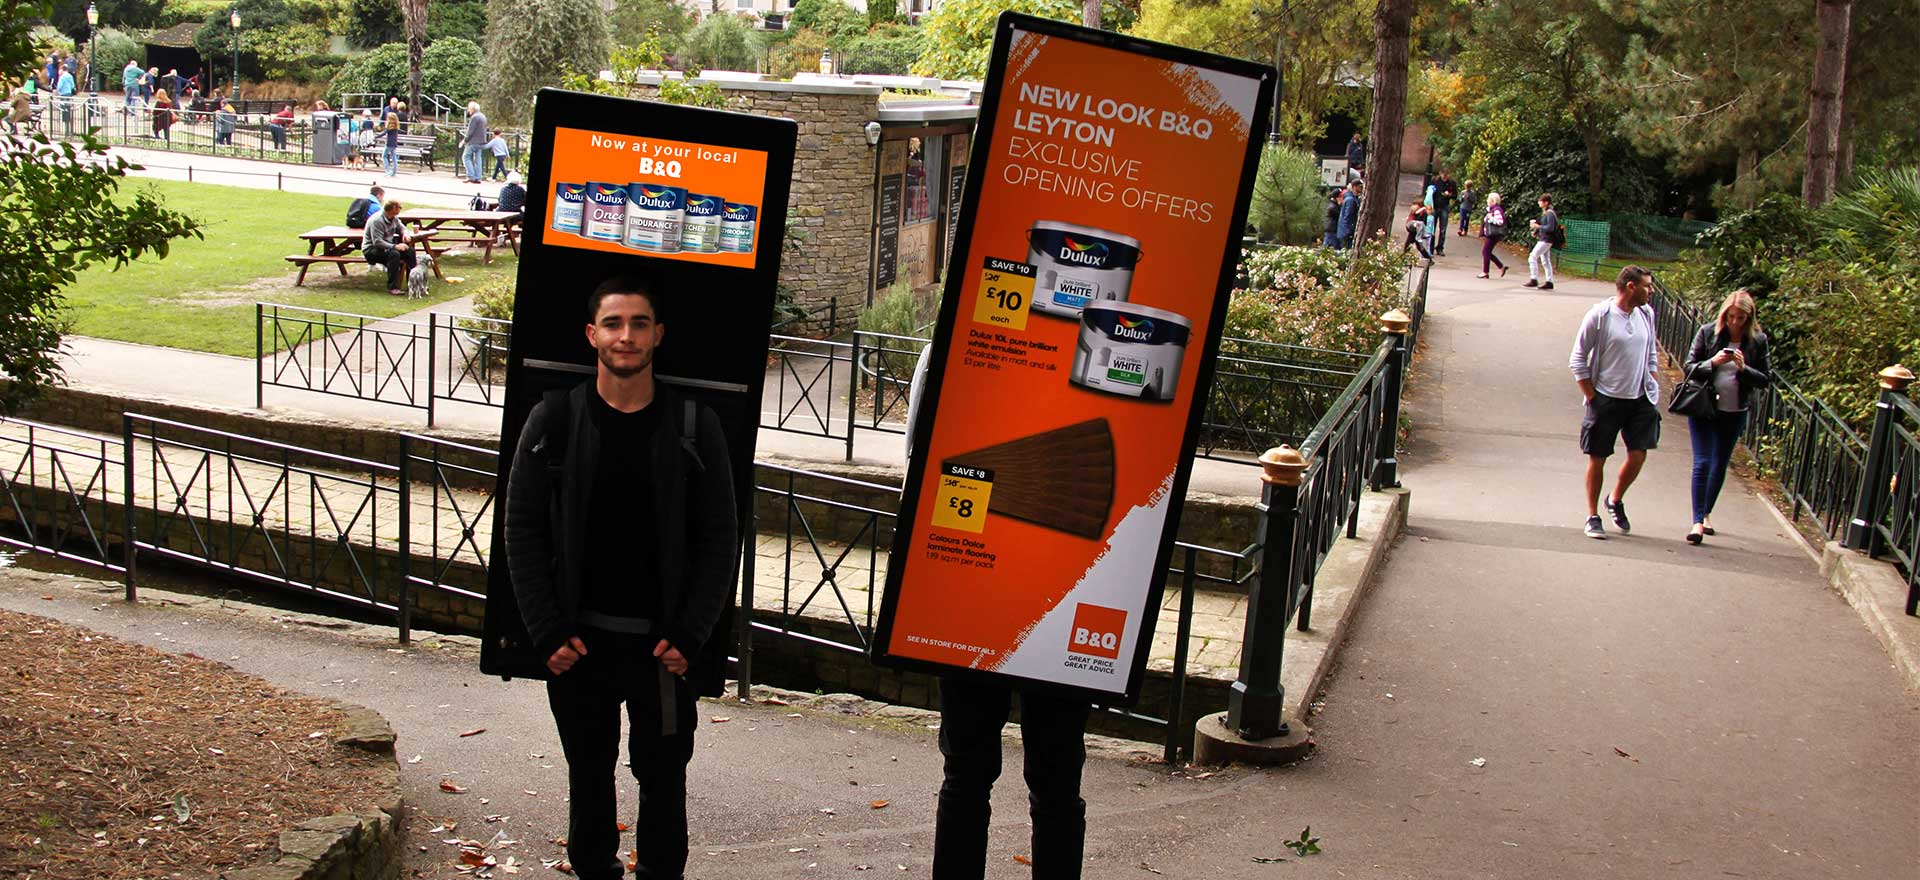 B&Q digital advertising walkers in Bournemouth Gardens